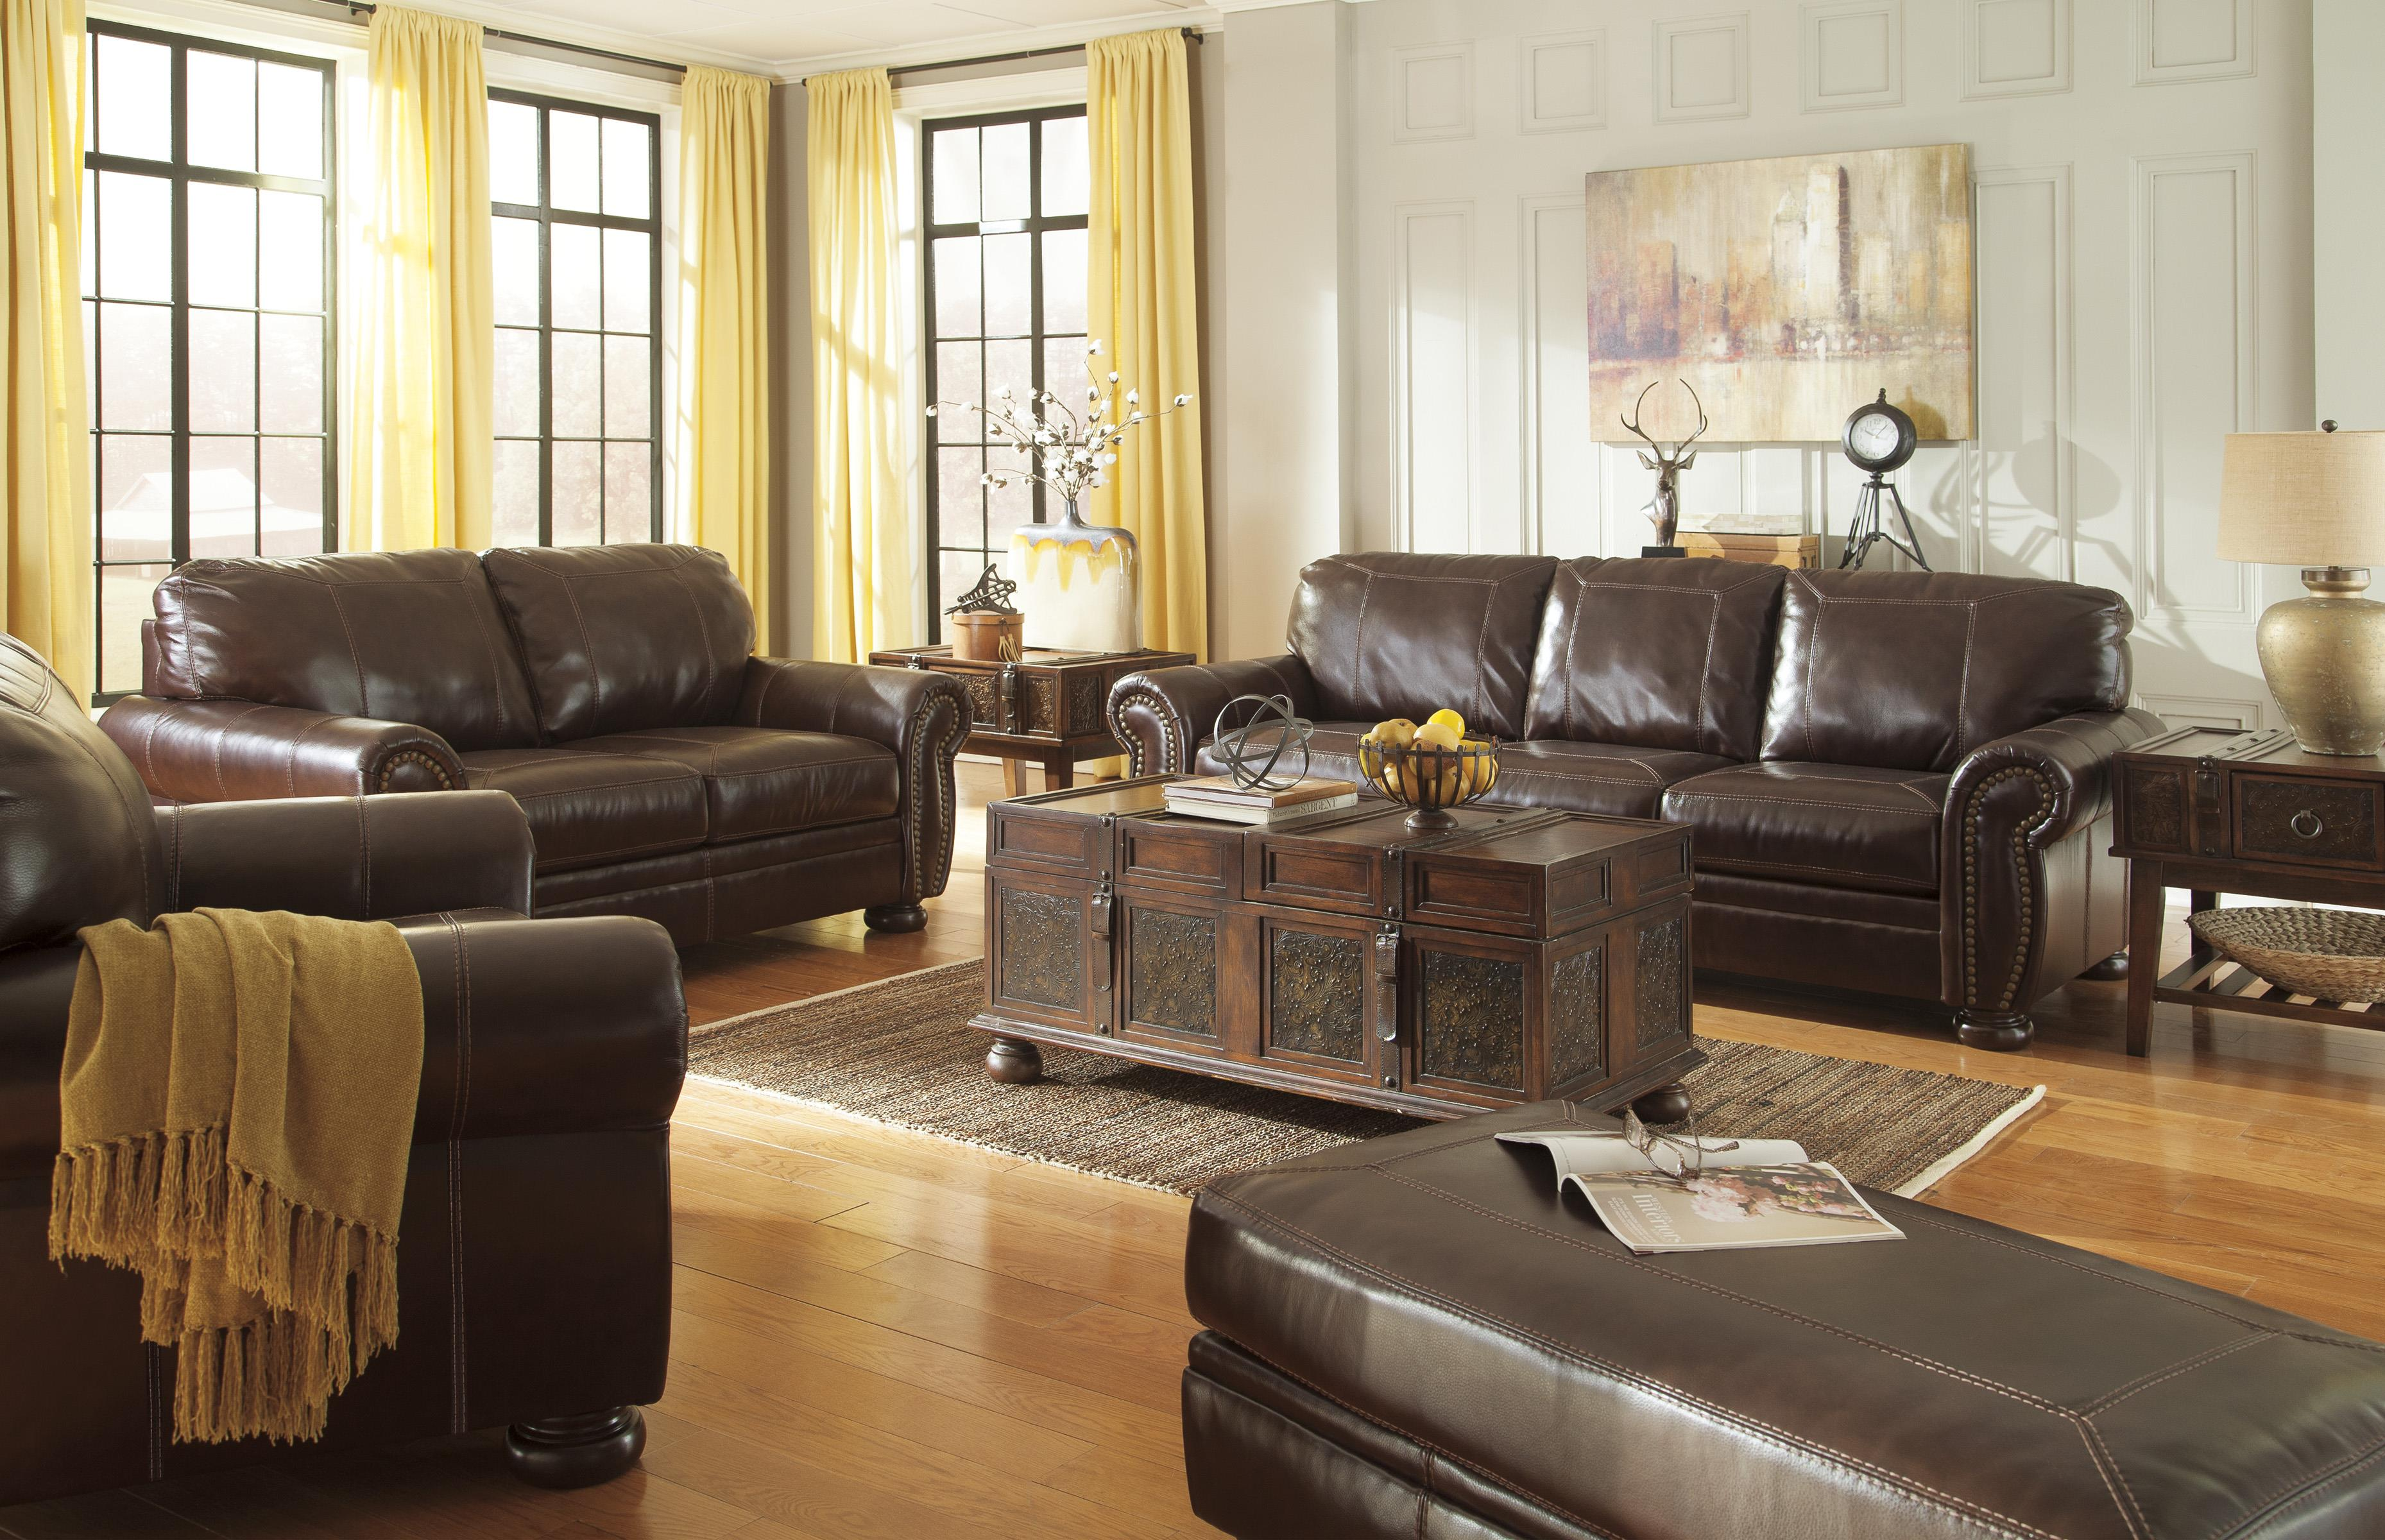 Traditional Leather Living Room Furniture traditional leather match sofa with rolled arms, nailhead trim